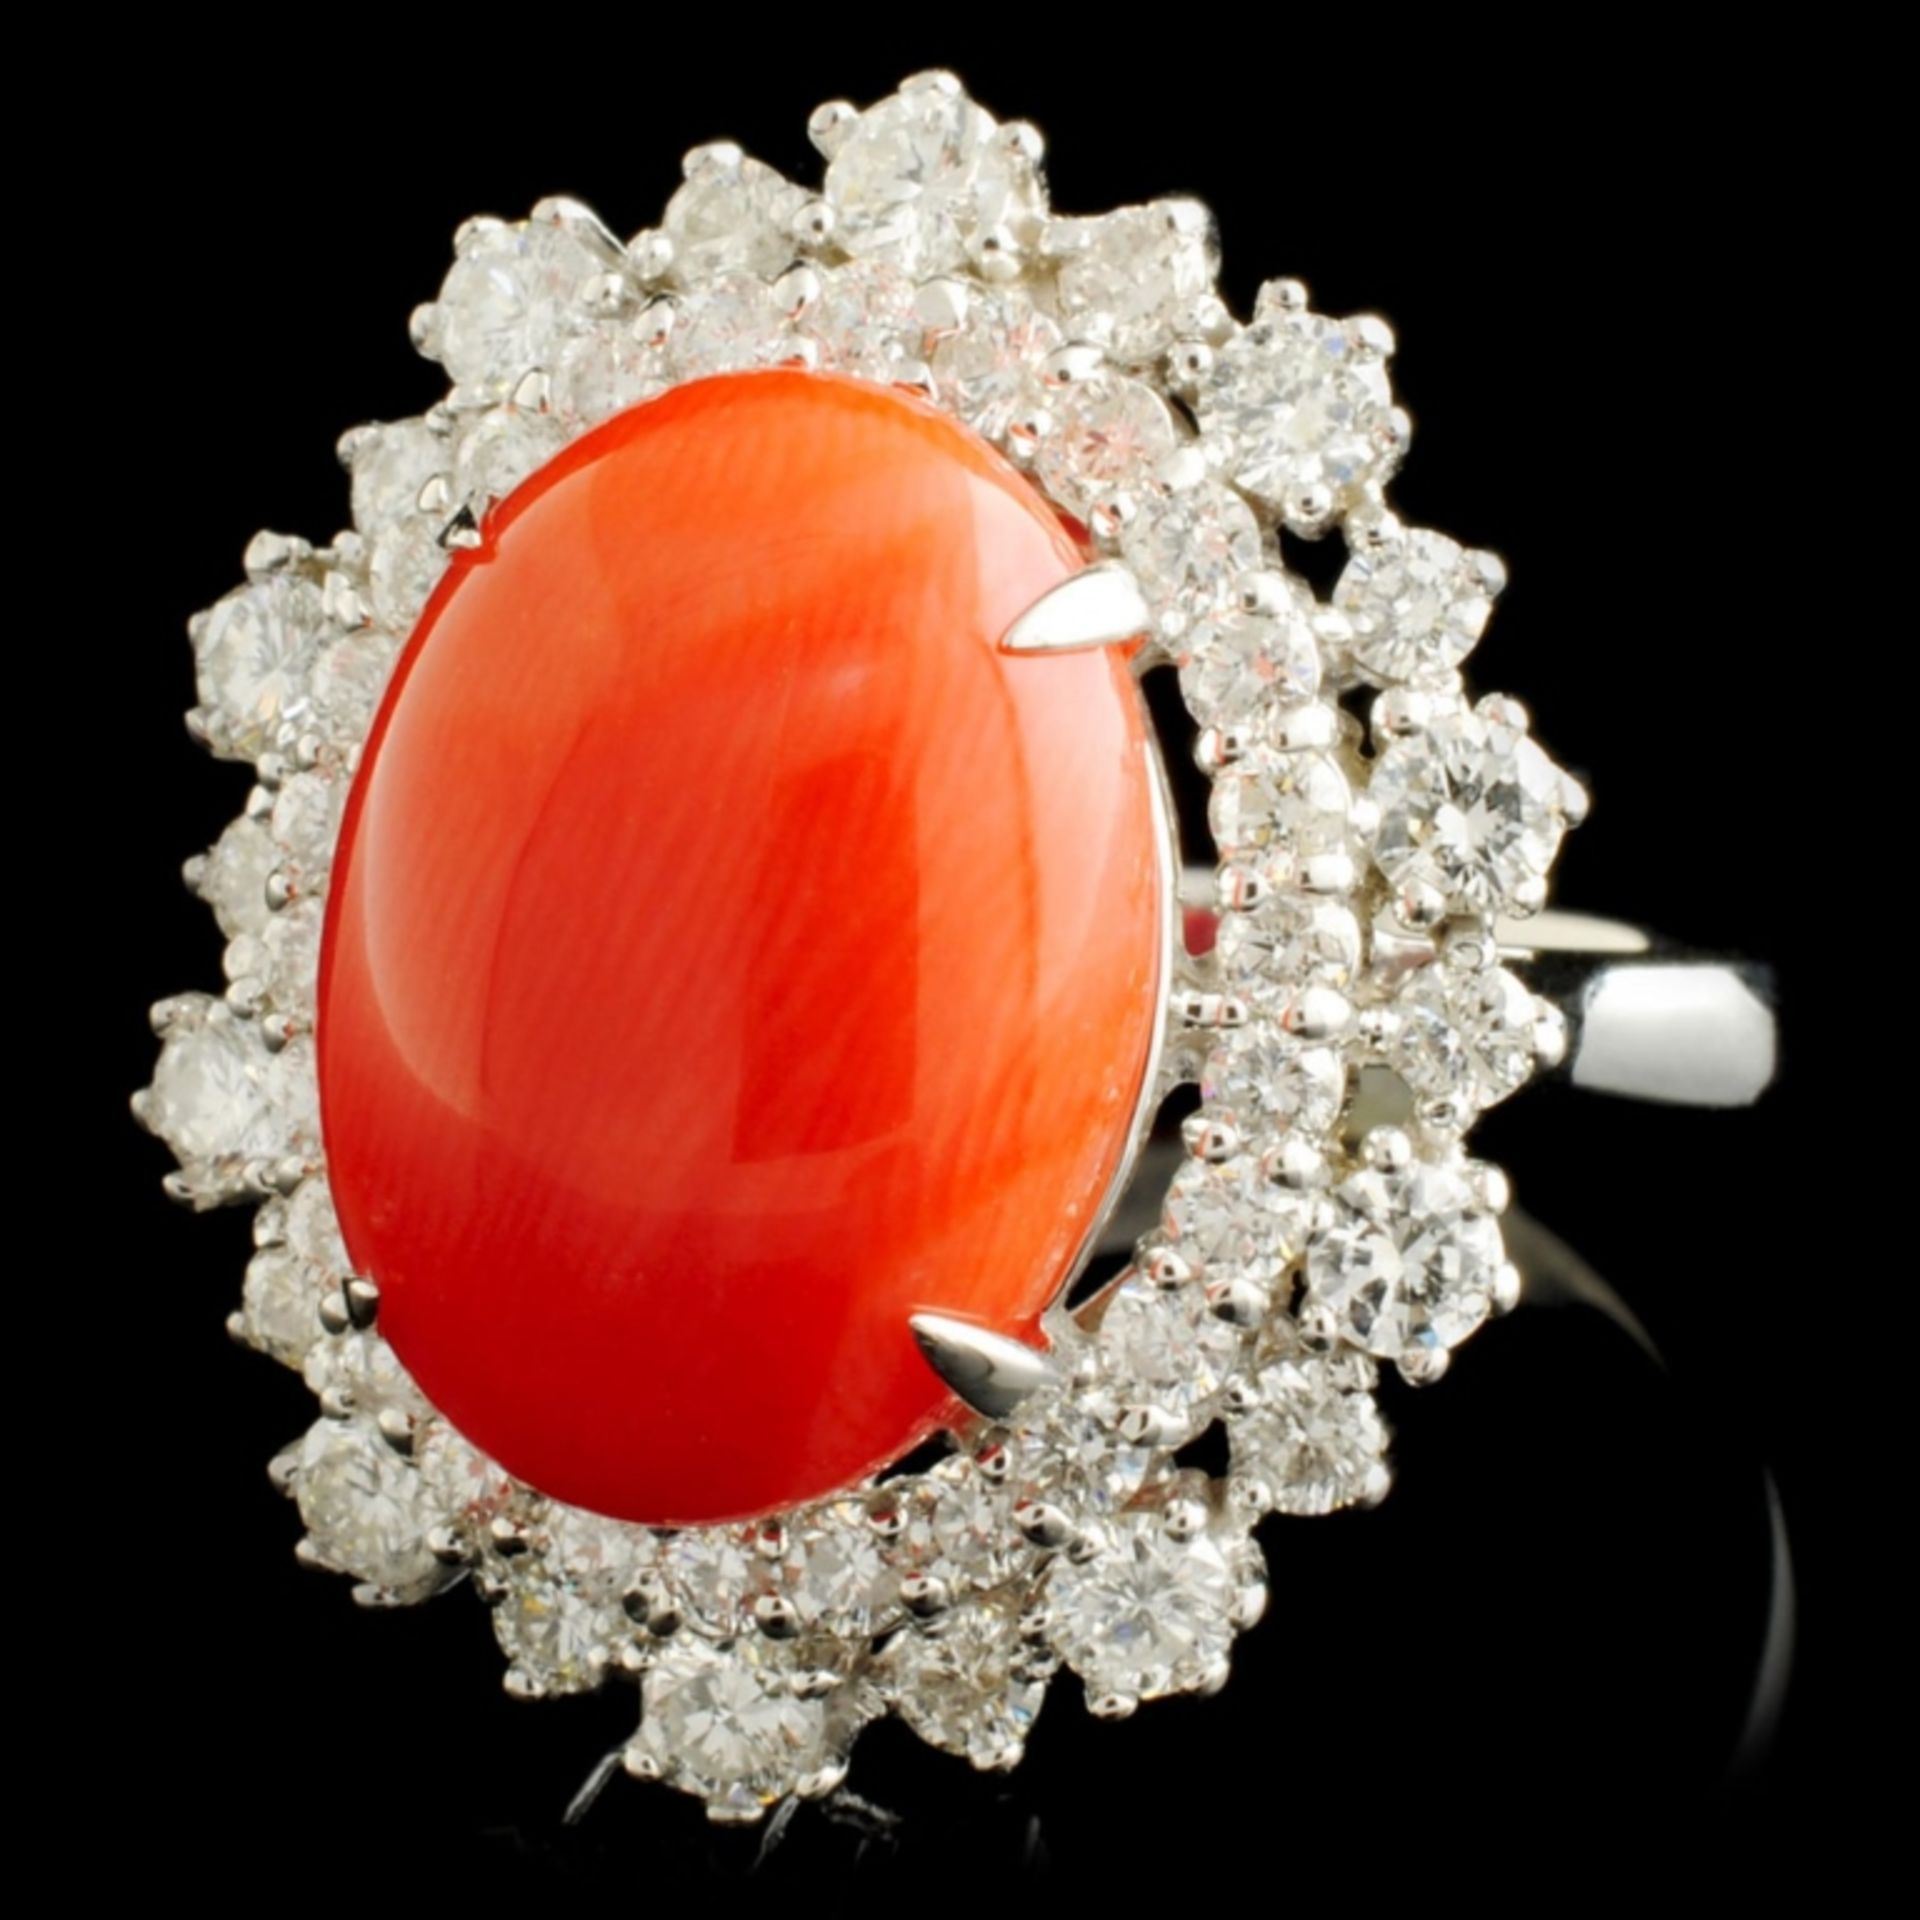 14K Gold 5.47ct Coral & 1.82ctw Diamond Ring - Image 2 of 5